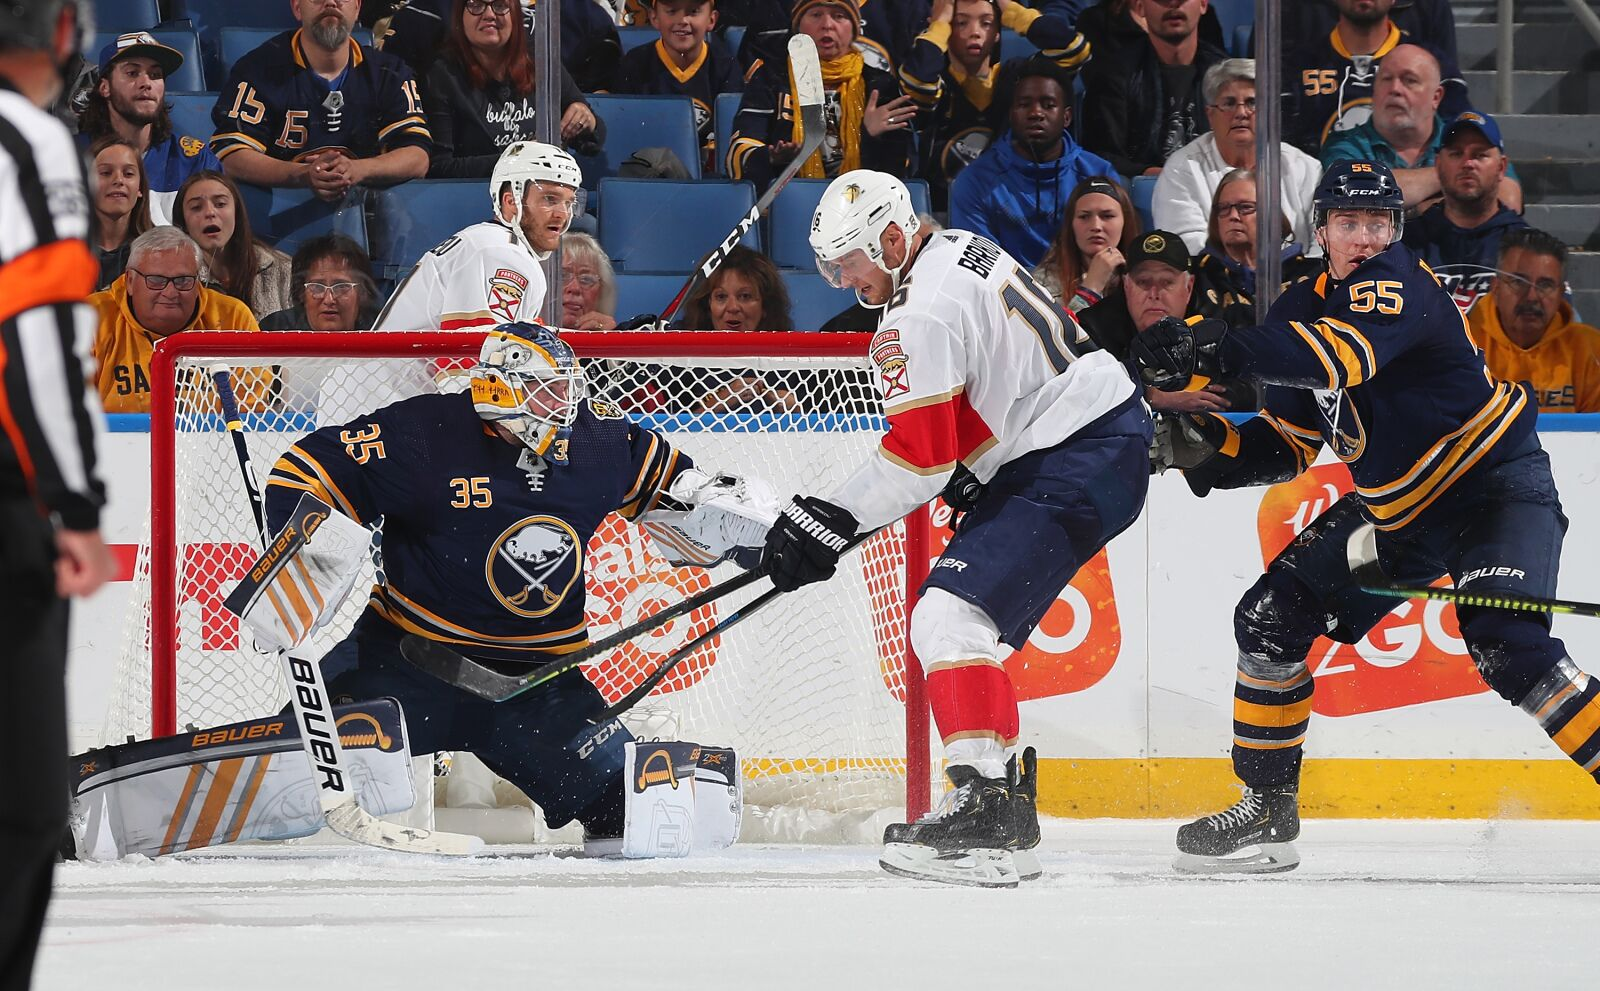 Florida Panthers Fall to the Buffalo Sabres in Shootout, 3-2